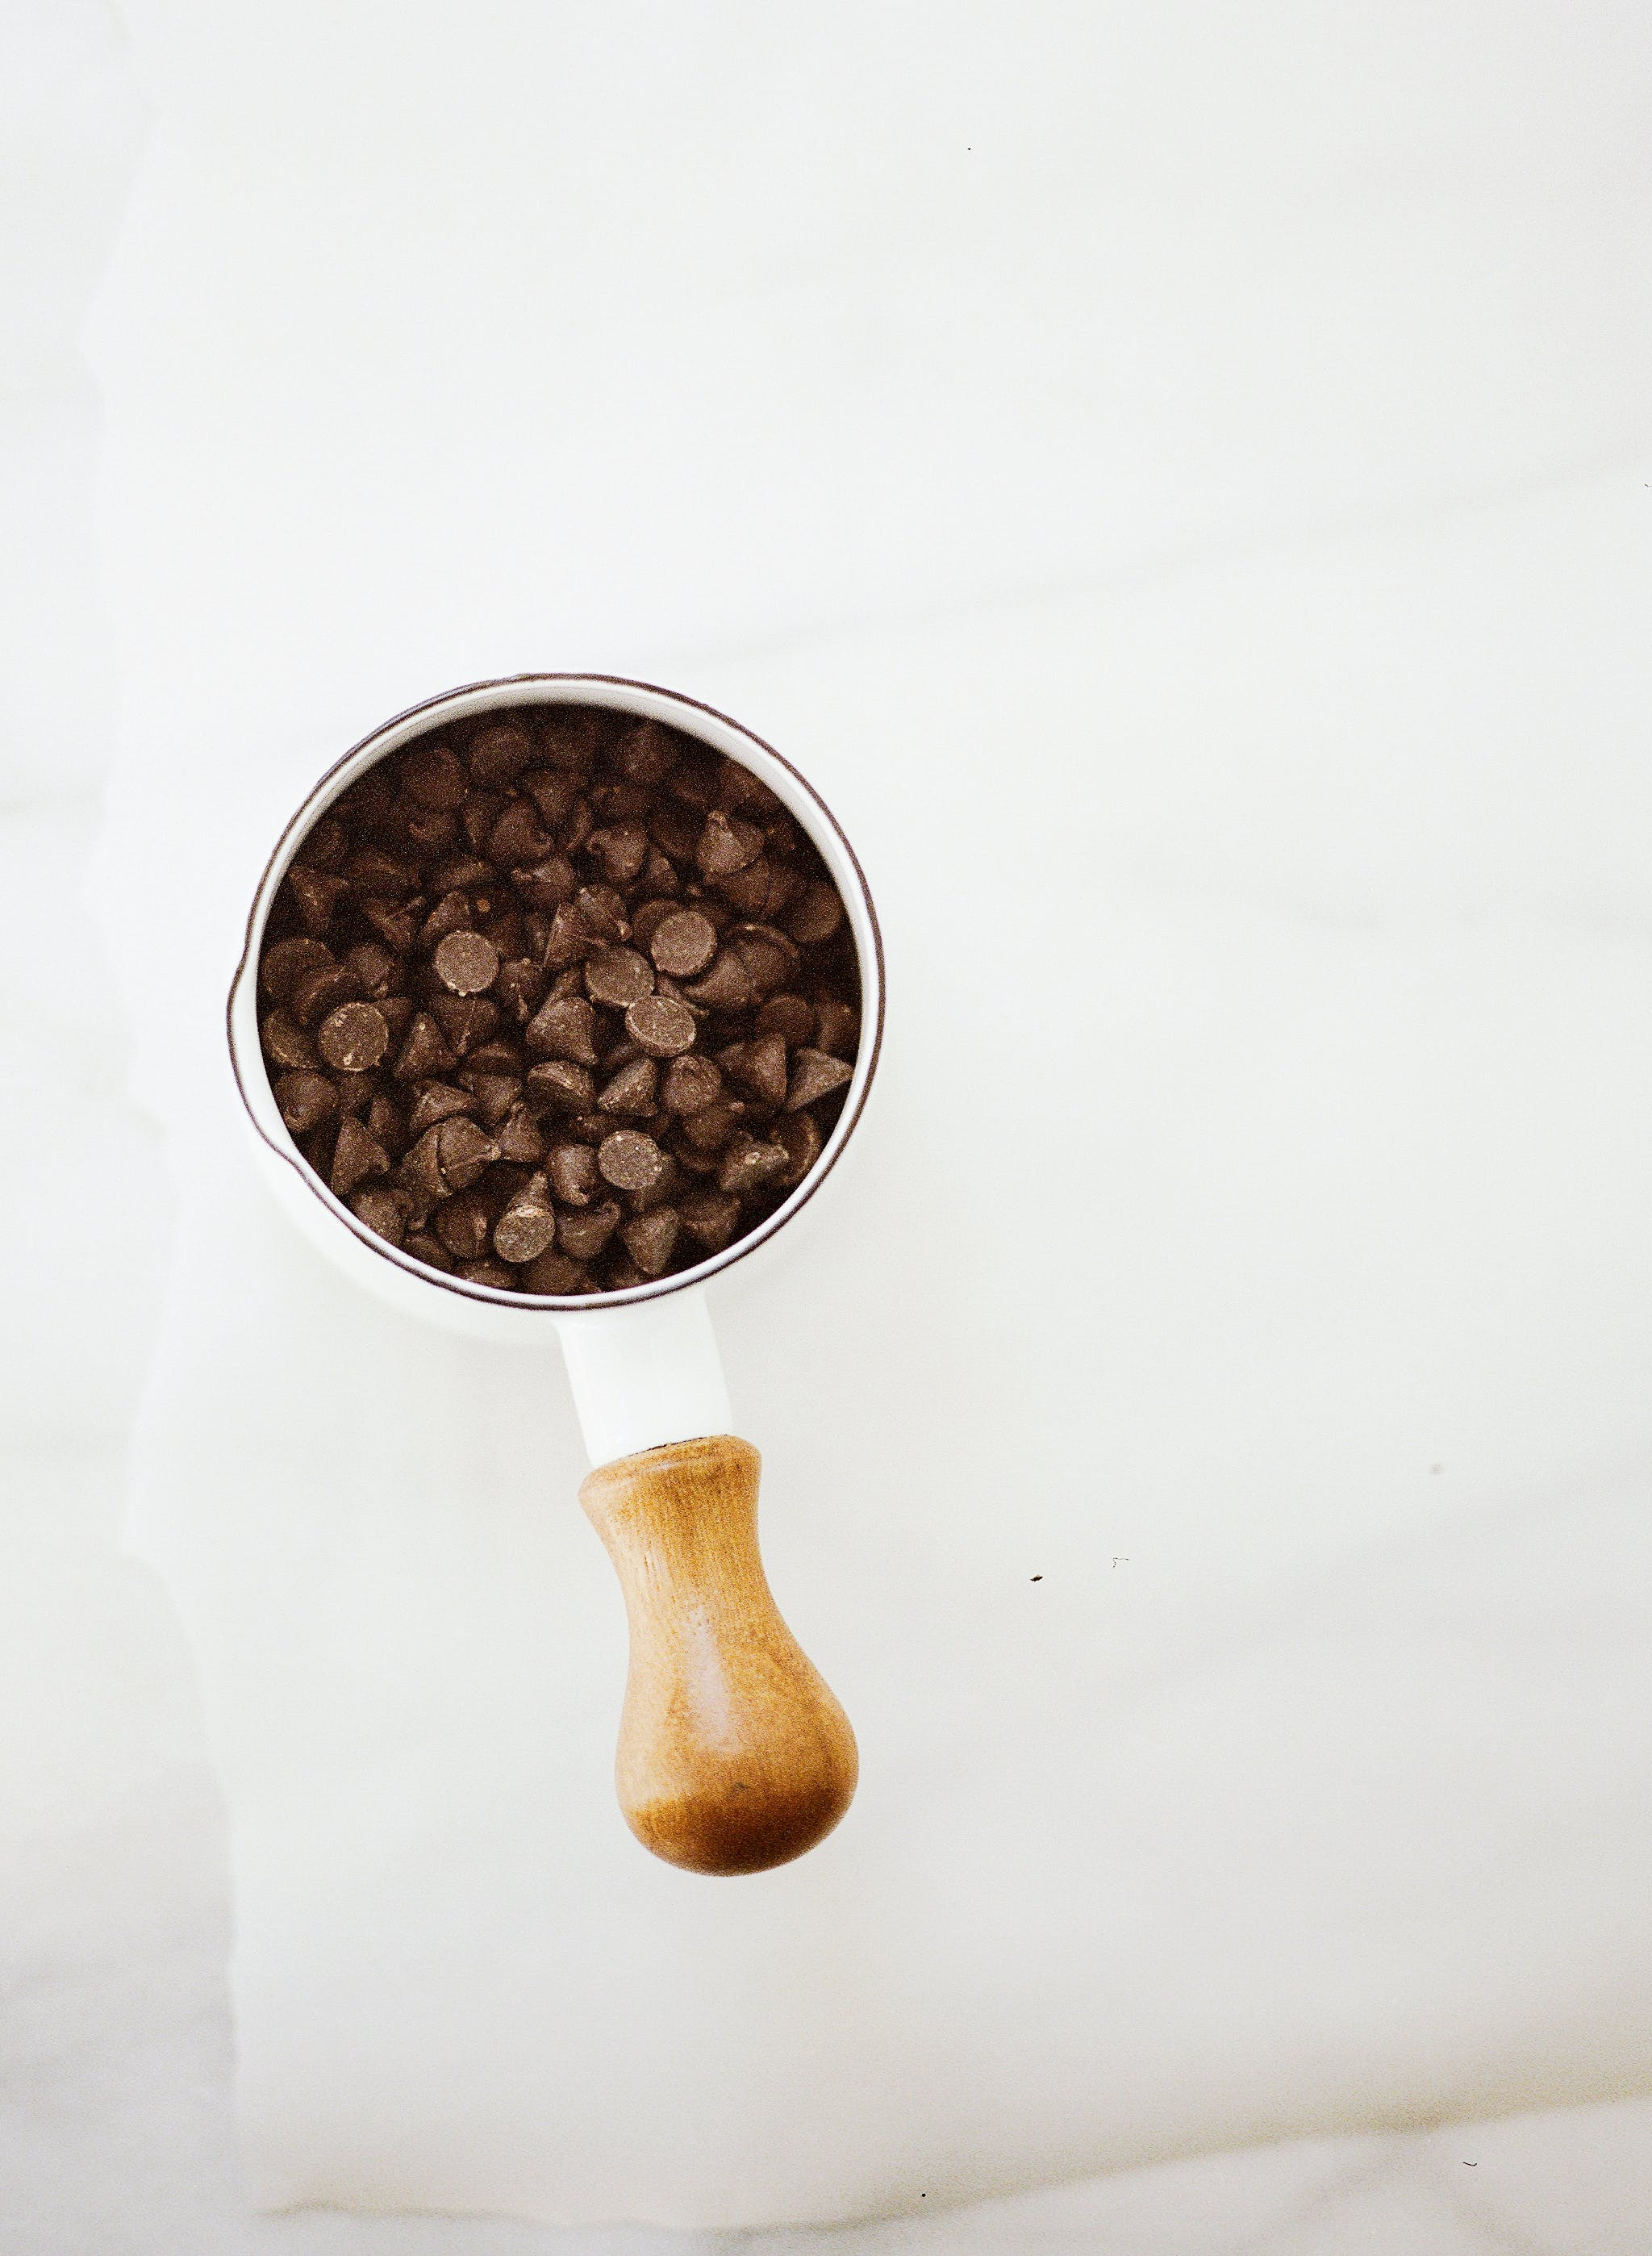 Chocolate Chips on Mug